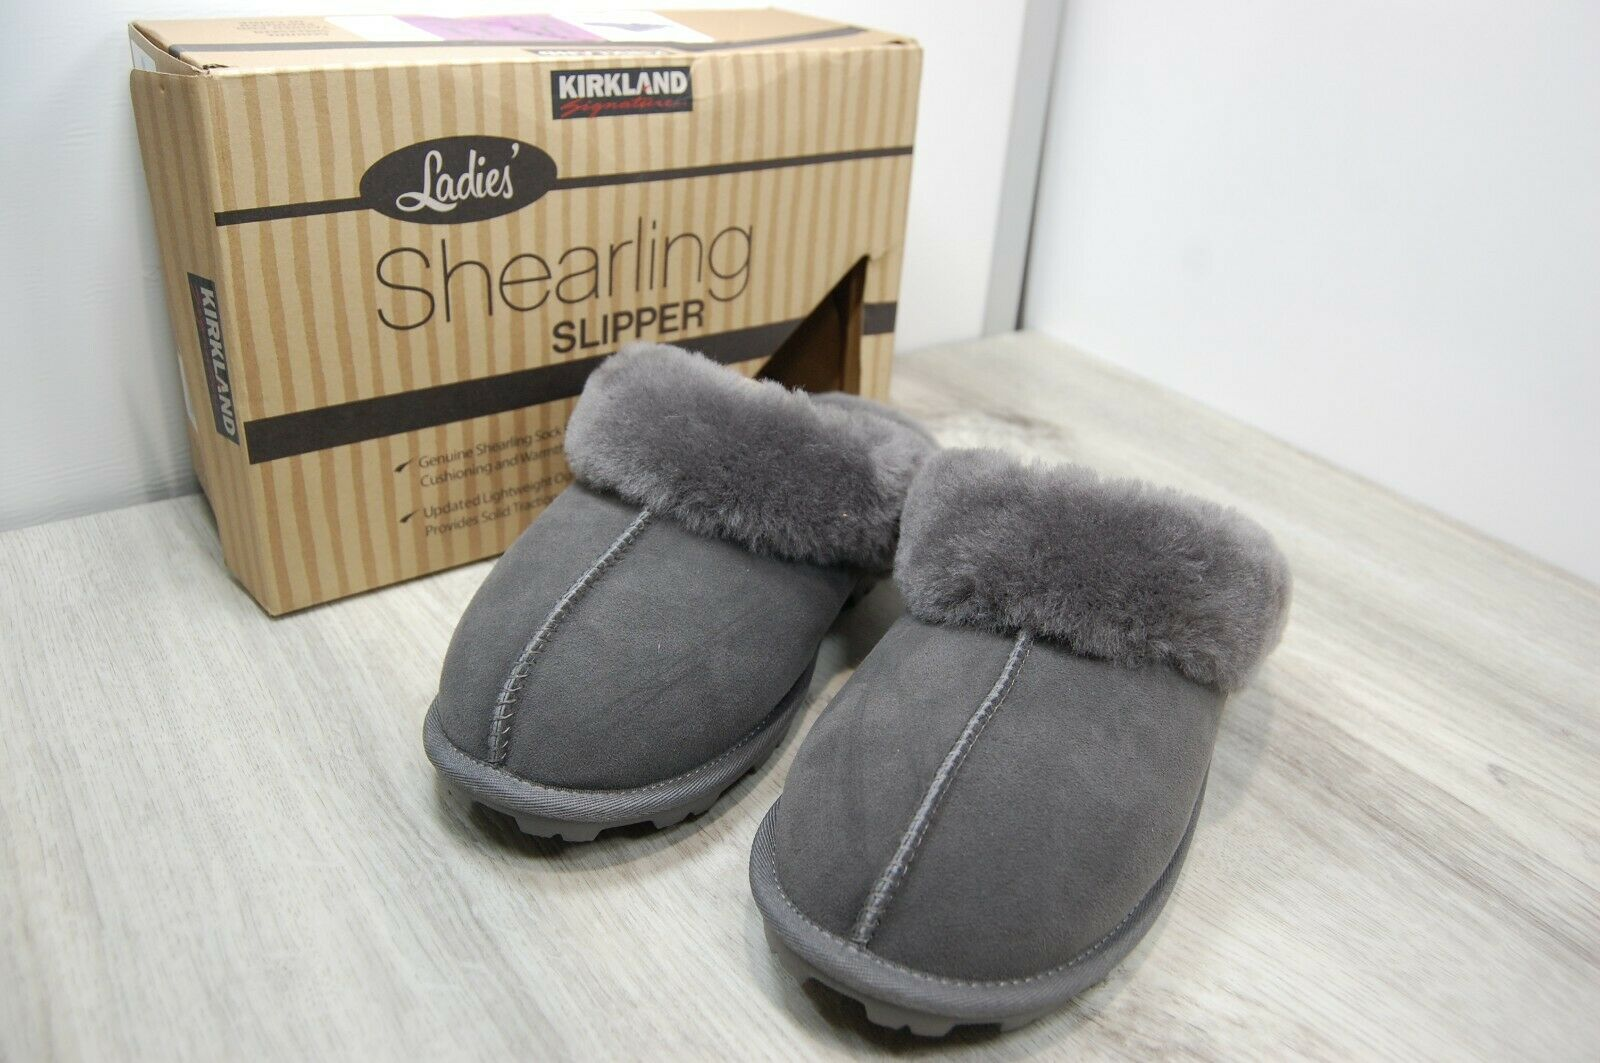 Kirkland Signature Women's Size 11 Grey Slipper / House Shoe